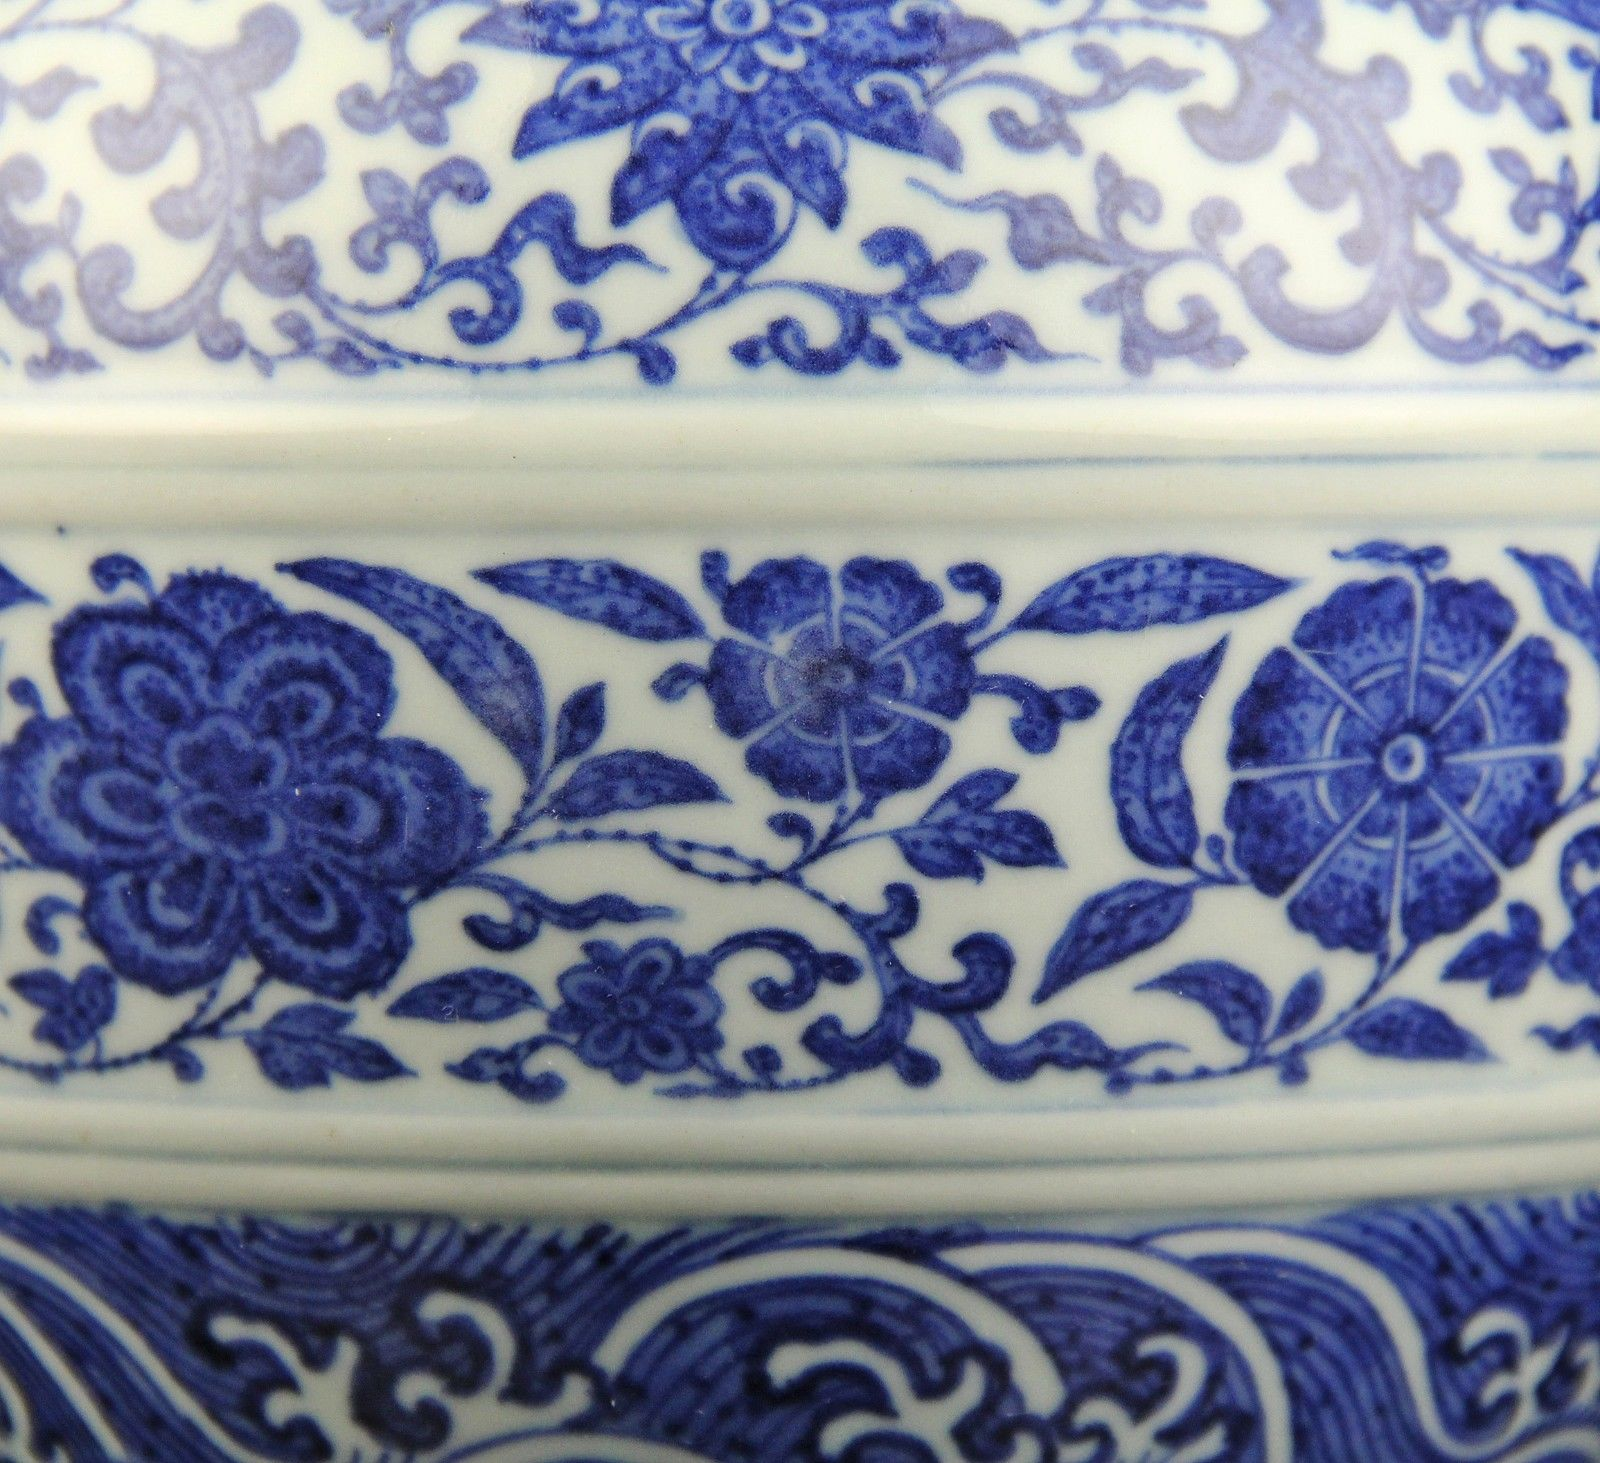 Antique Chinese Blue And White Porcelain Vase Daoguang